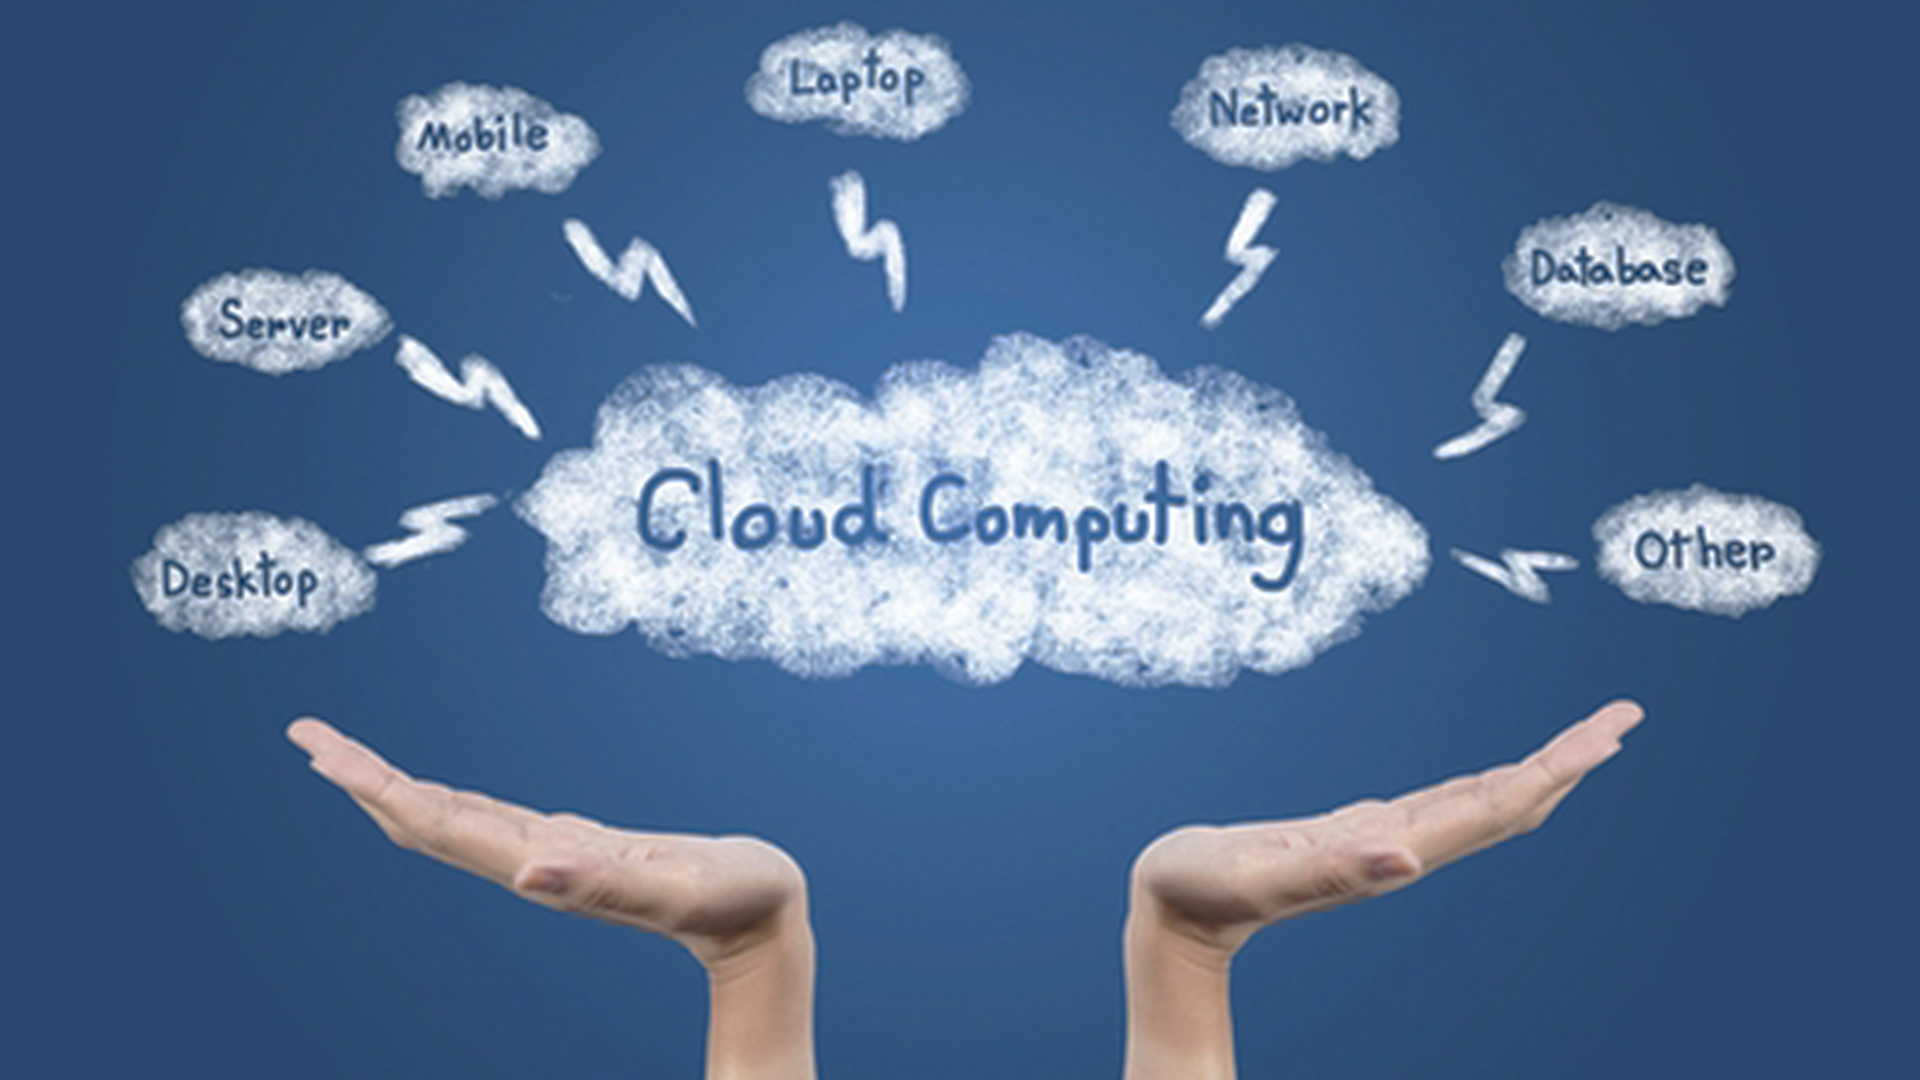 cloud computing defined Types of cloud computing defined the array of available cloud computing services is vast, but most fall into one of the following categories saas (software as a service.